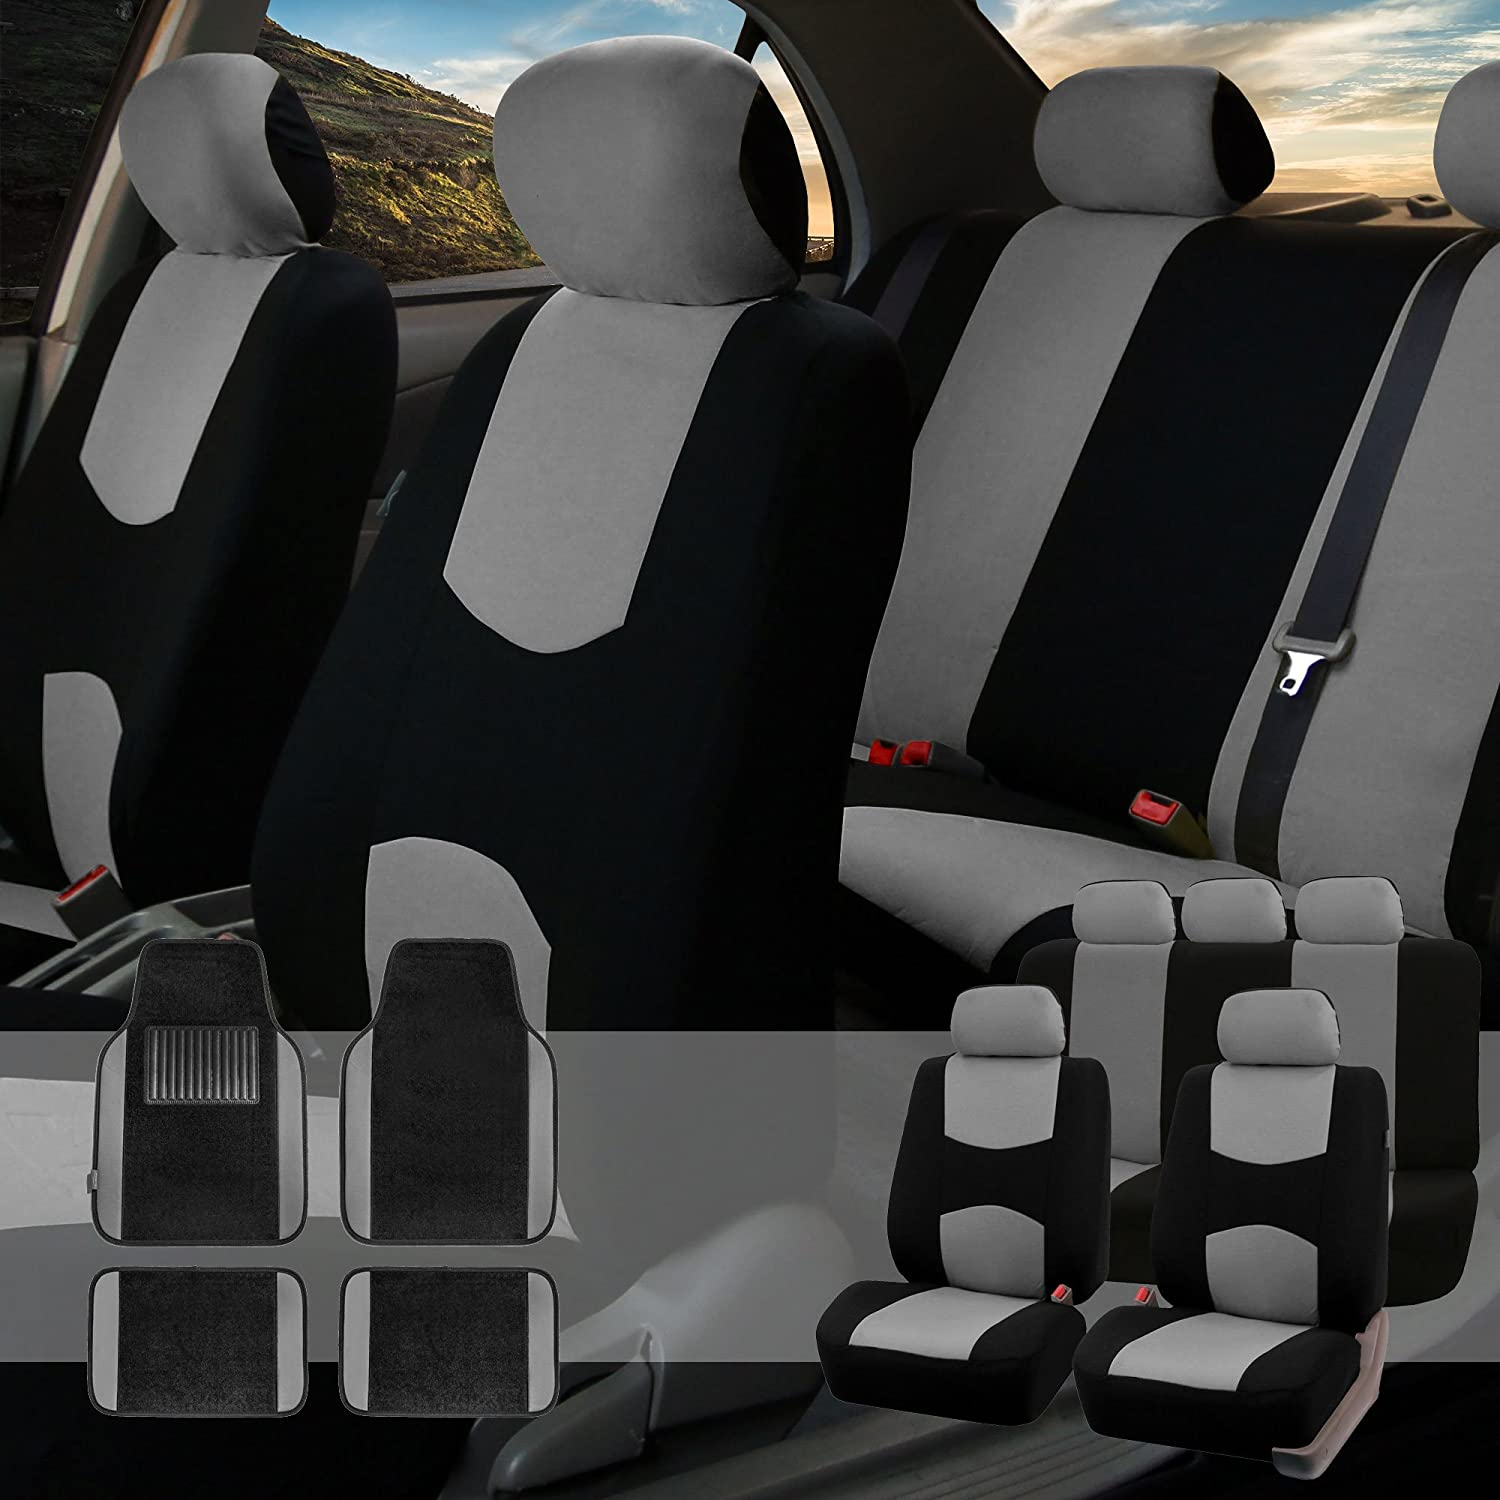 FH Group FB050115 + F14407 Full Set Flat Cloth Car Seat Covers with Premium Carpet Floor Mats Gray/Black- Fit Most Car, Truck, SUV, or Van